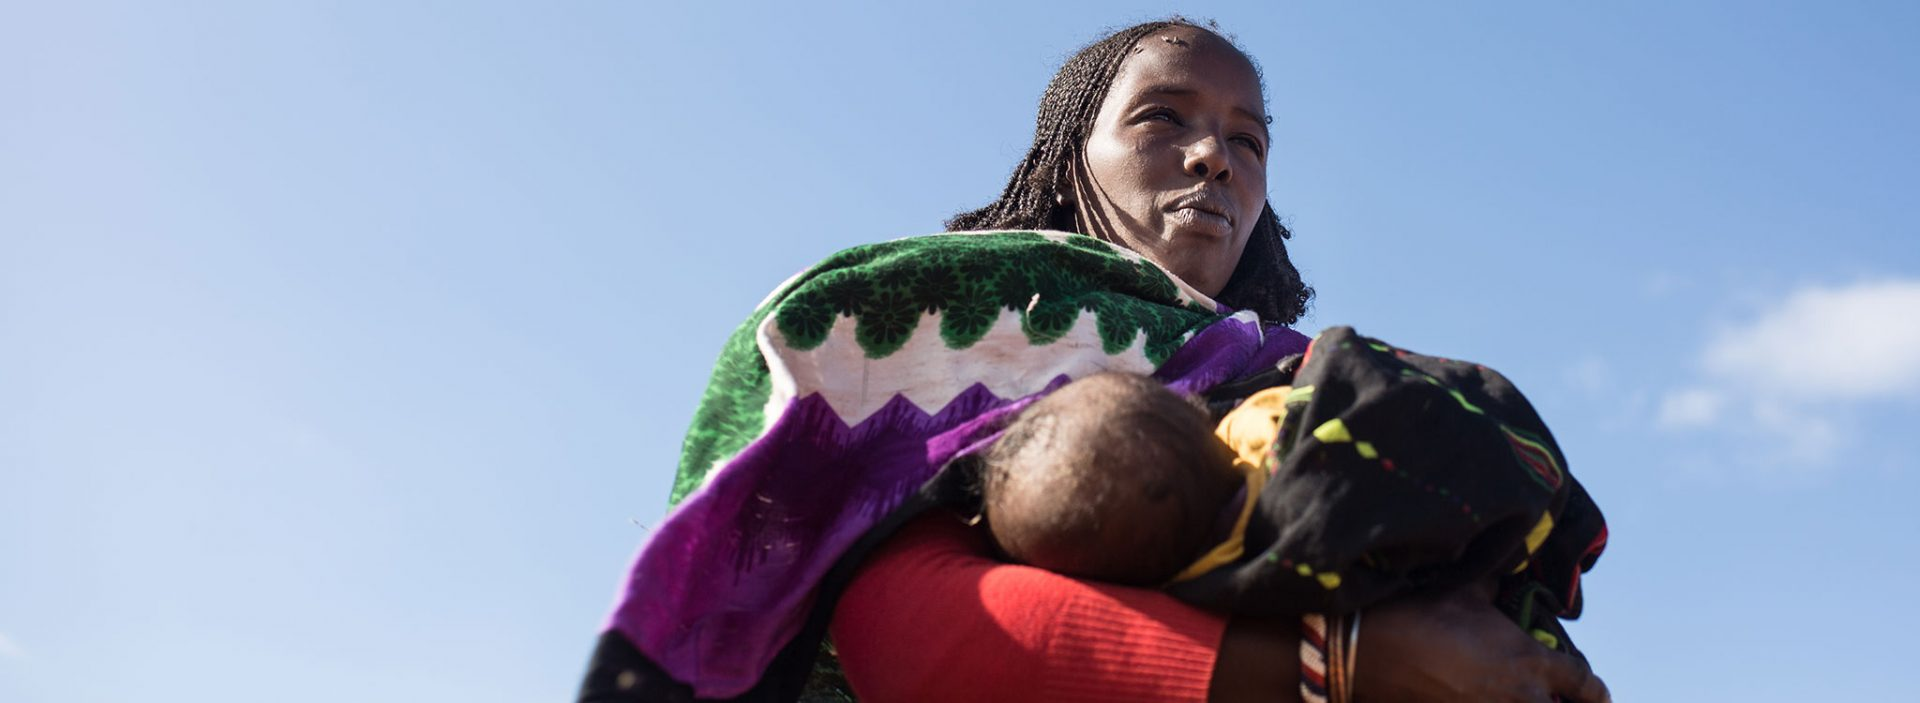 A woman carries their child at an Action Against Hunger project in Ethiopia.